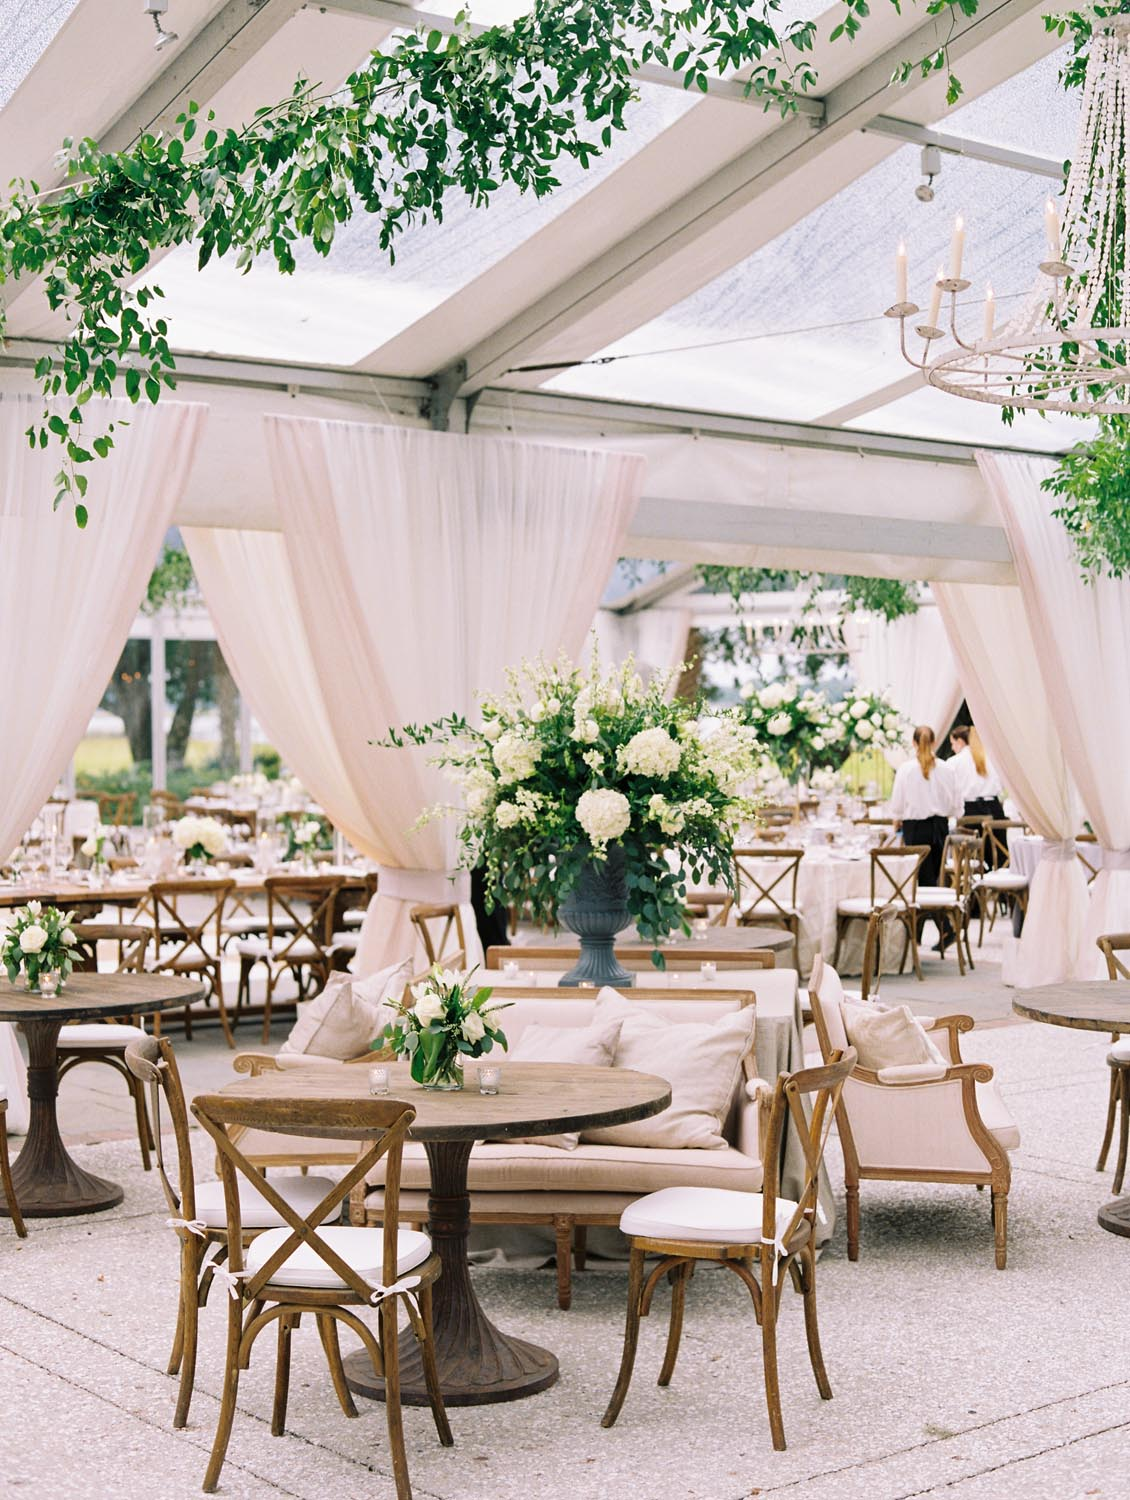 Elegant, gracious wedding with high centerpieces and long farm house style tables. Wedding planning and design by A Charleston Bride.